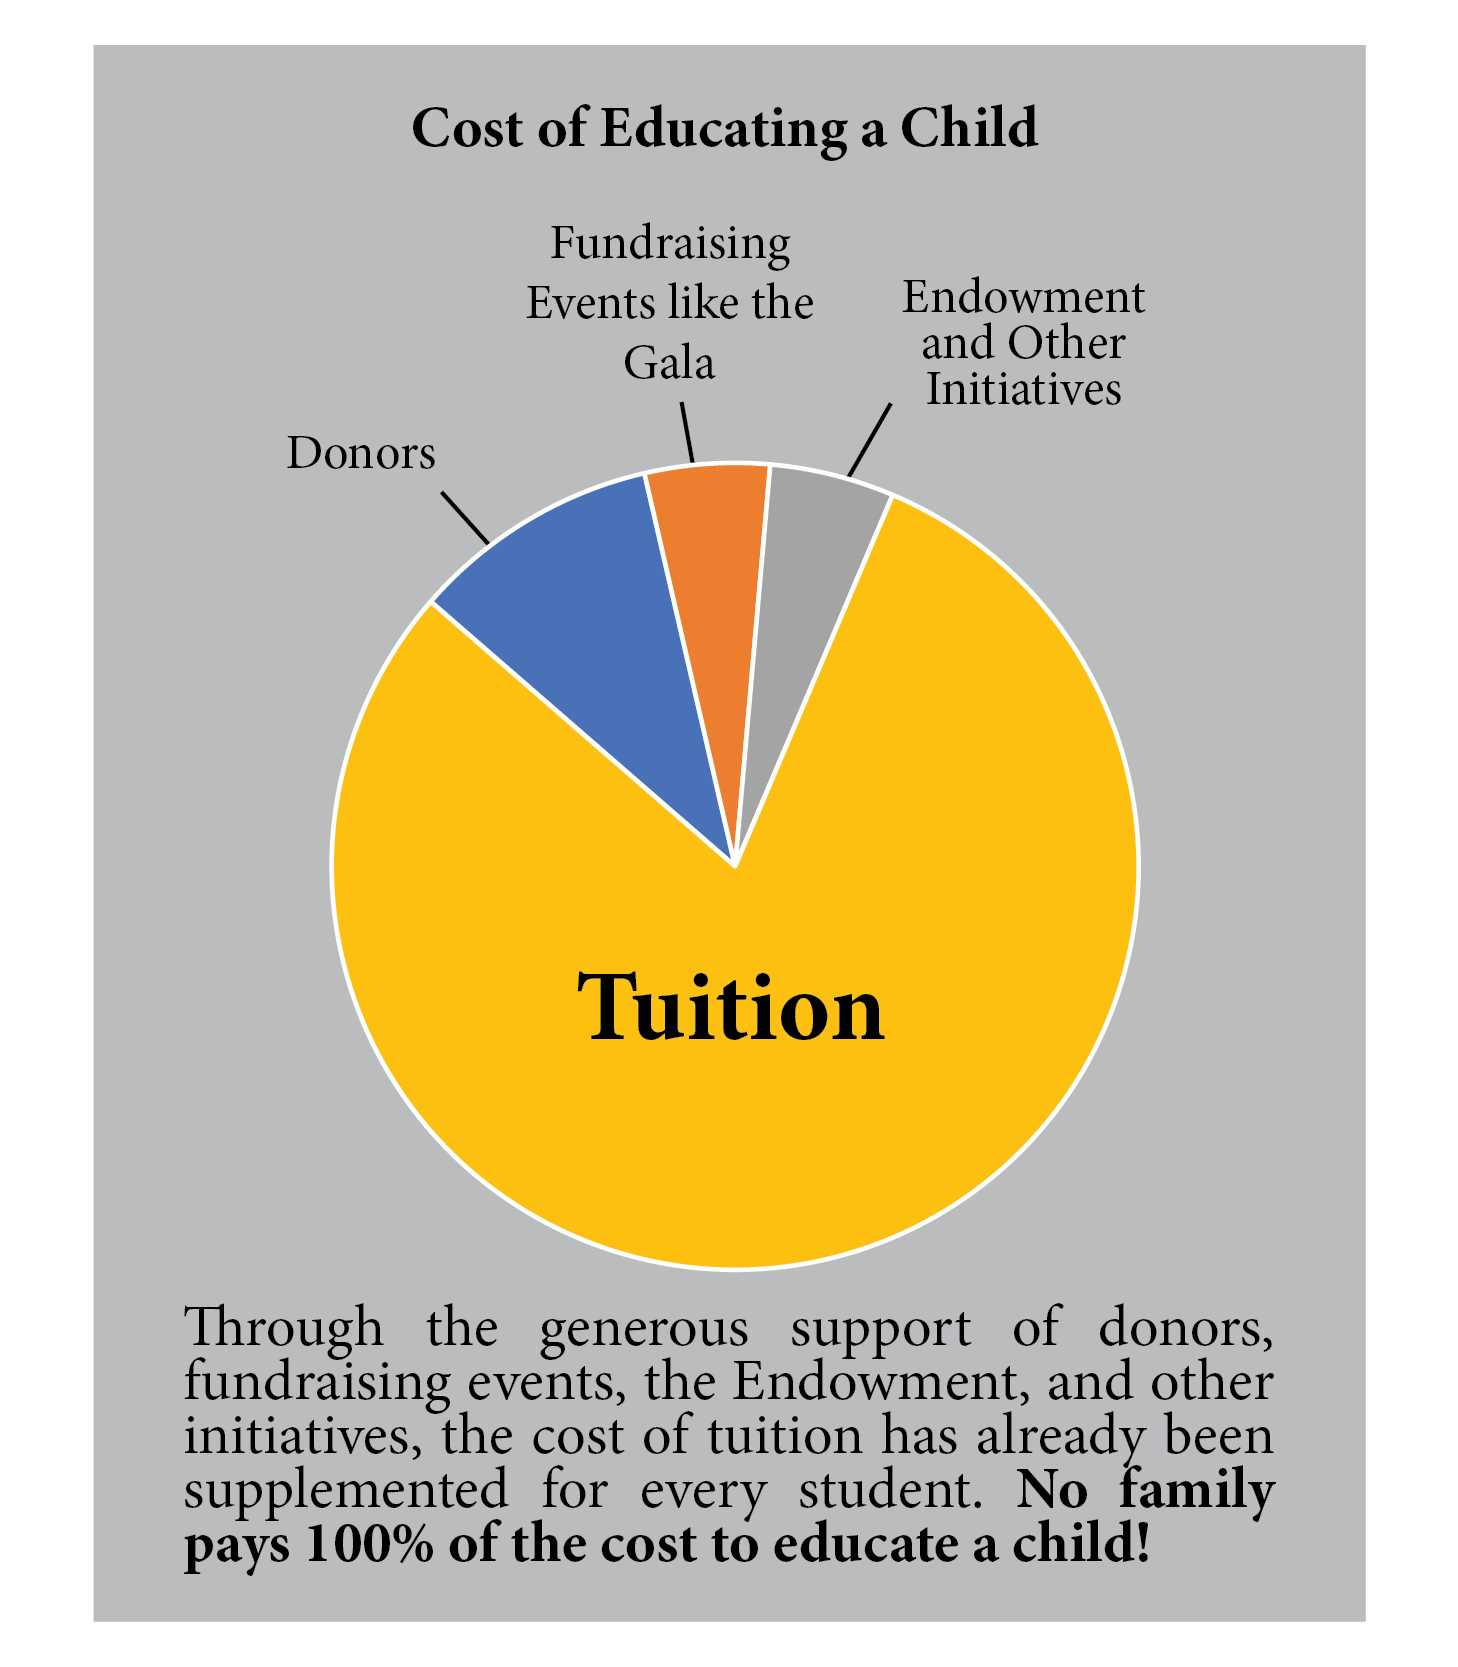 20181611194322tuition-pie-chart.jpg (116 KB)